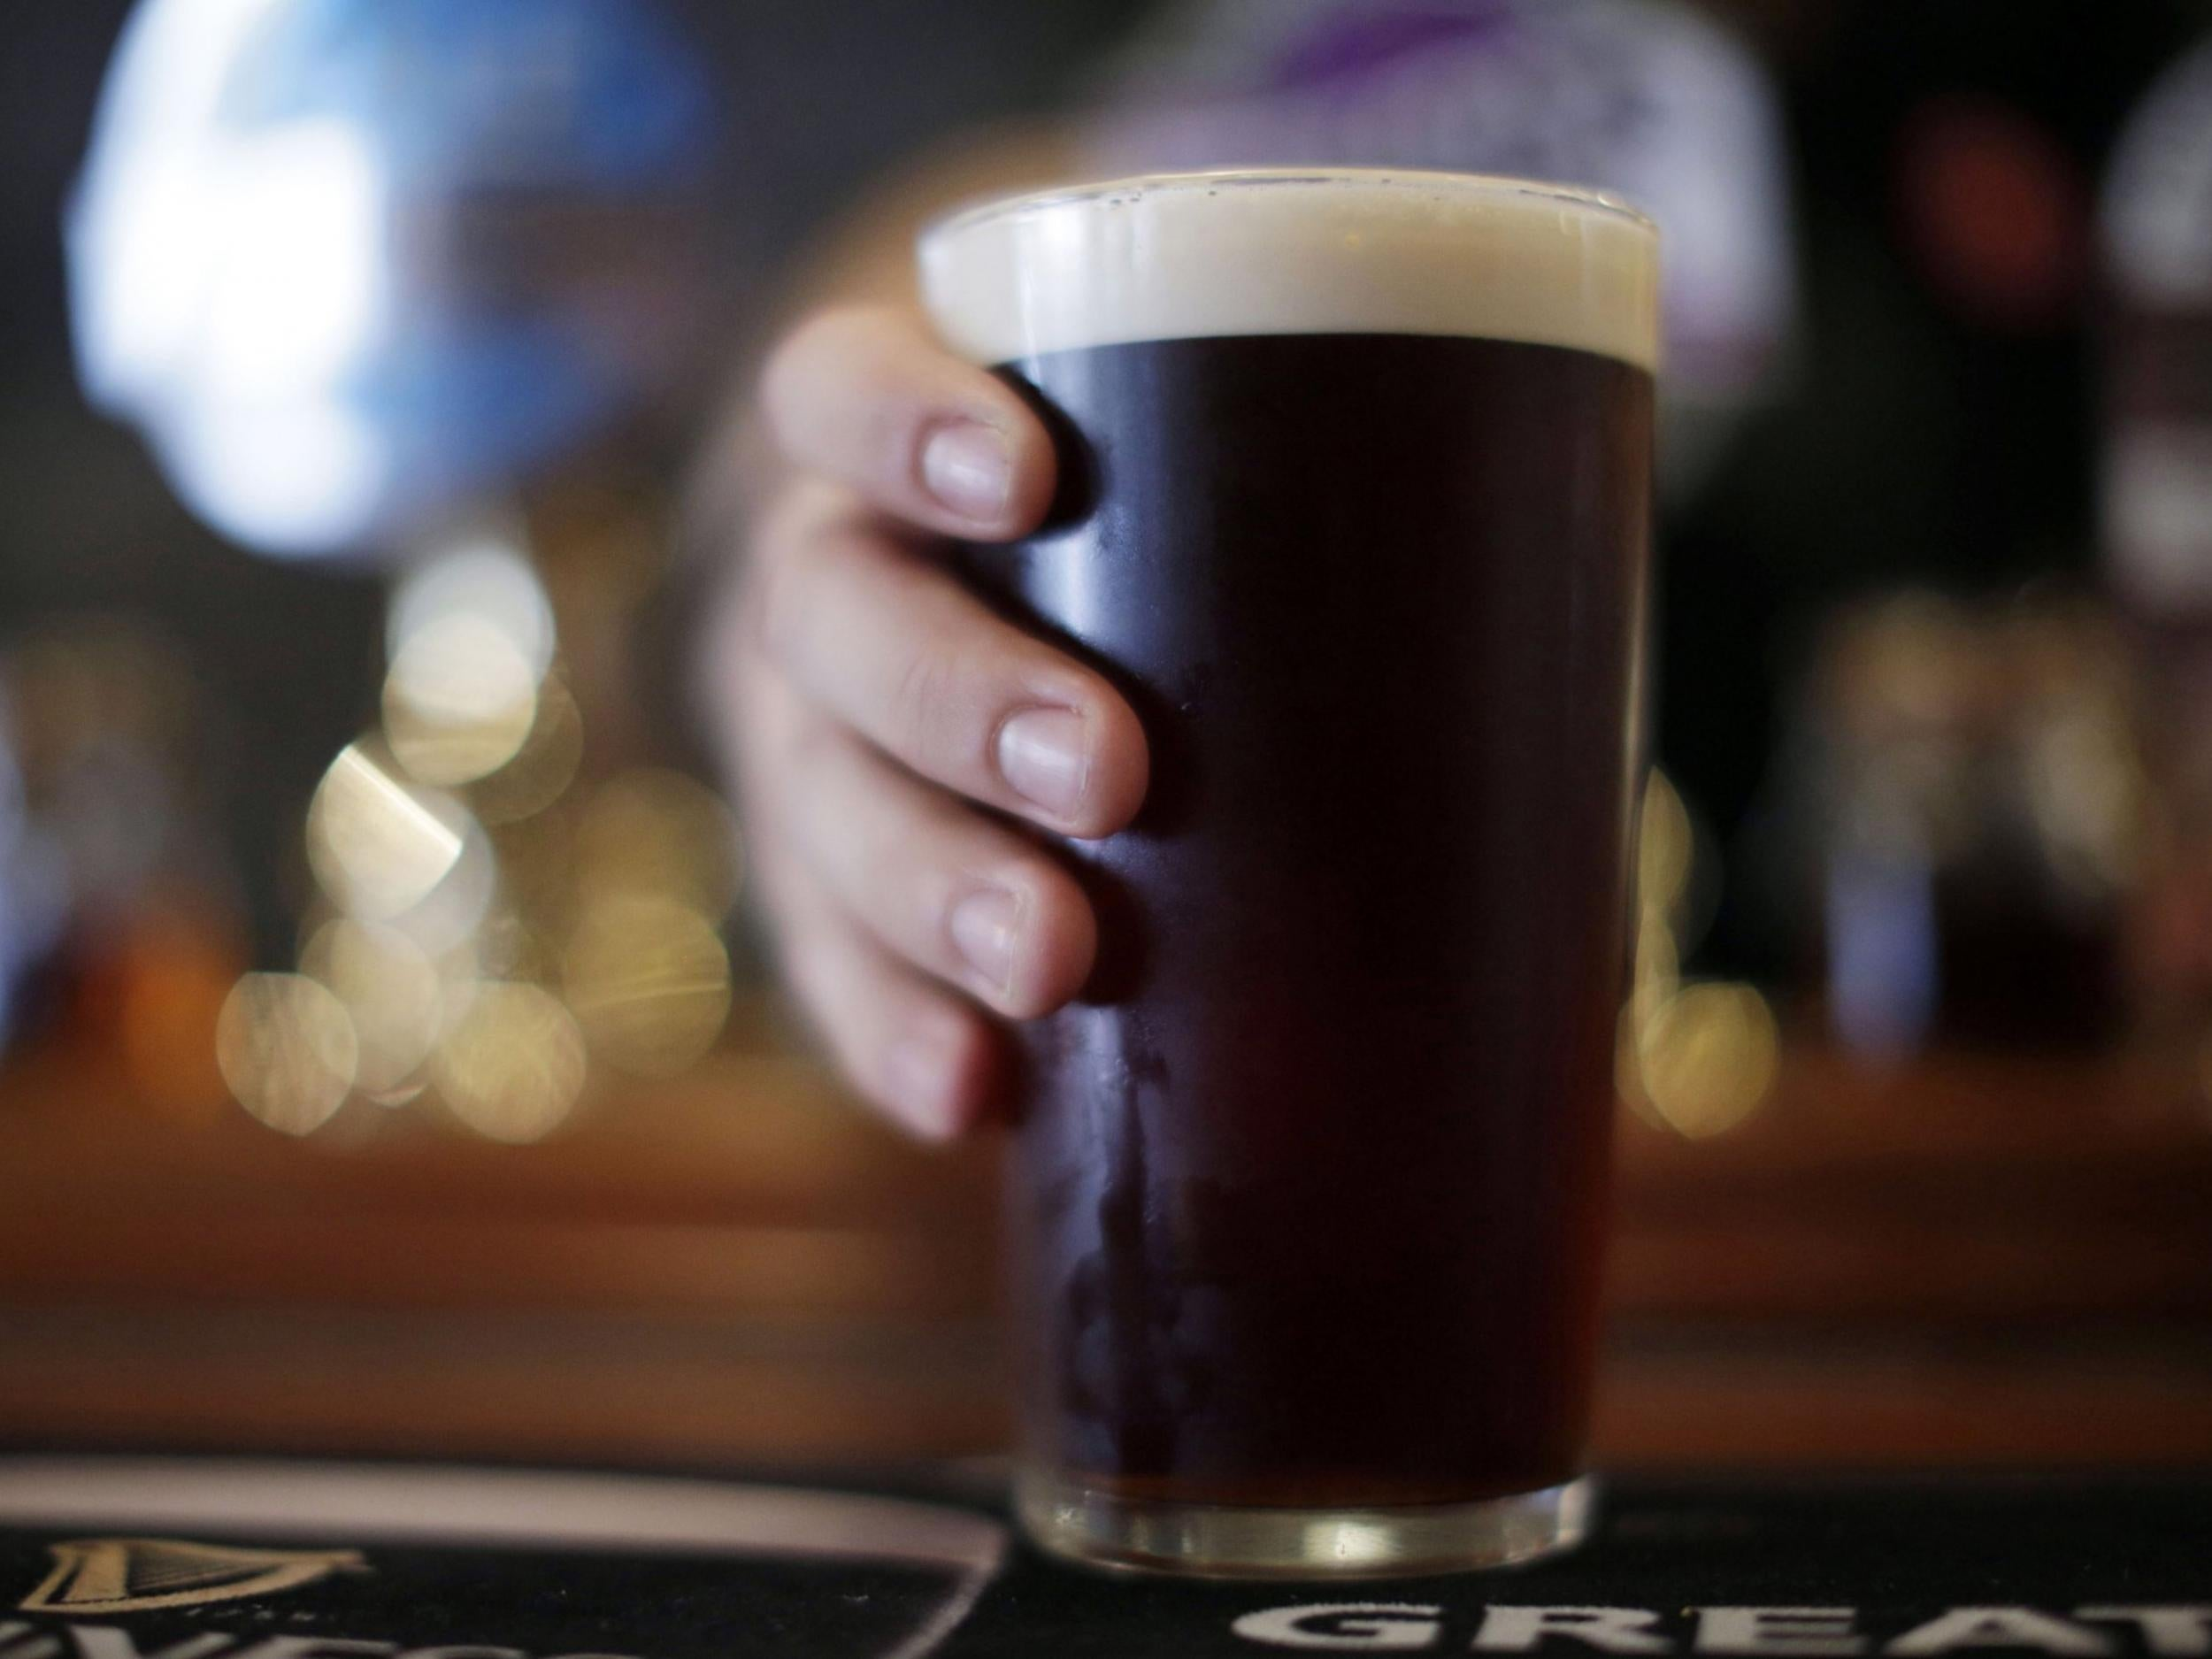 Coronavirus: Barley used to make beer could become food for barnyard animals as pubs and restaurants remain closed